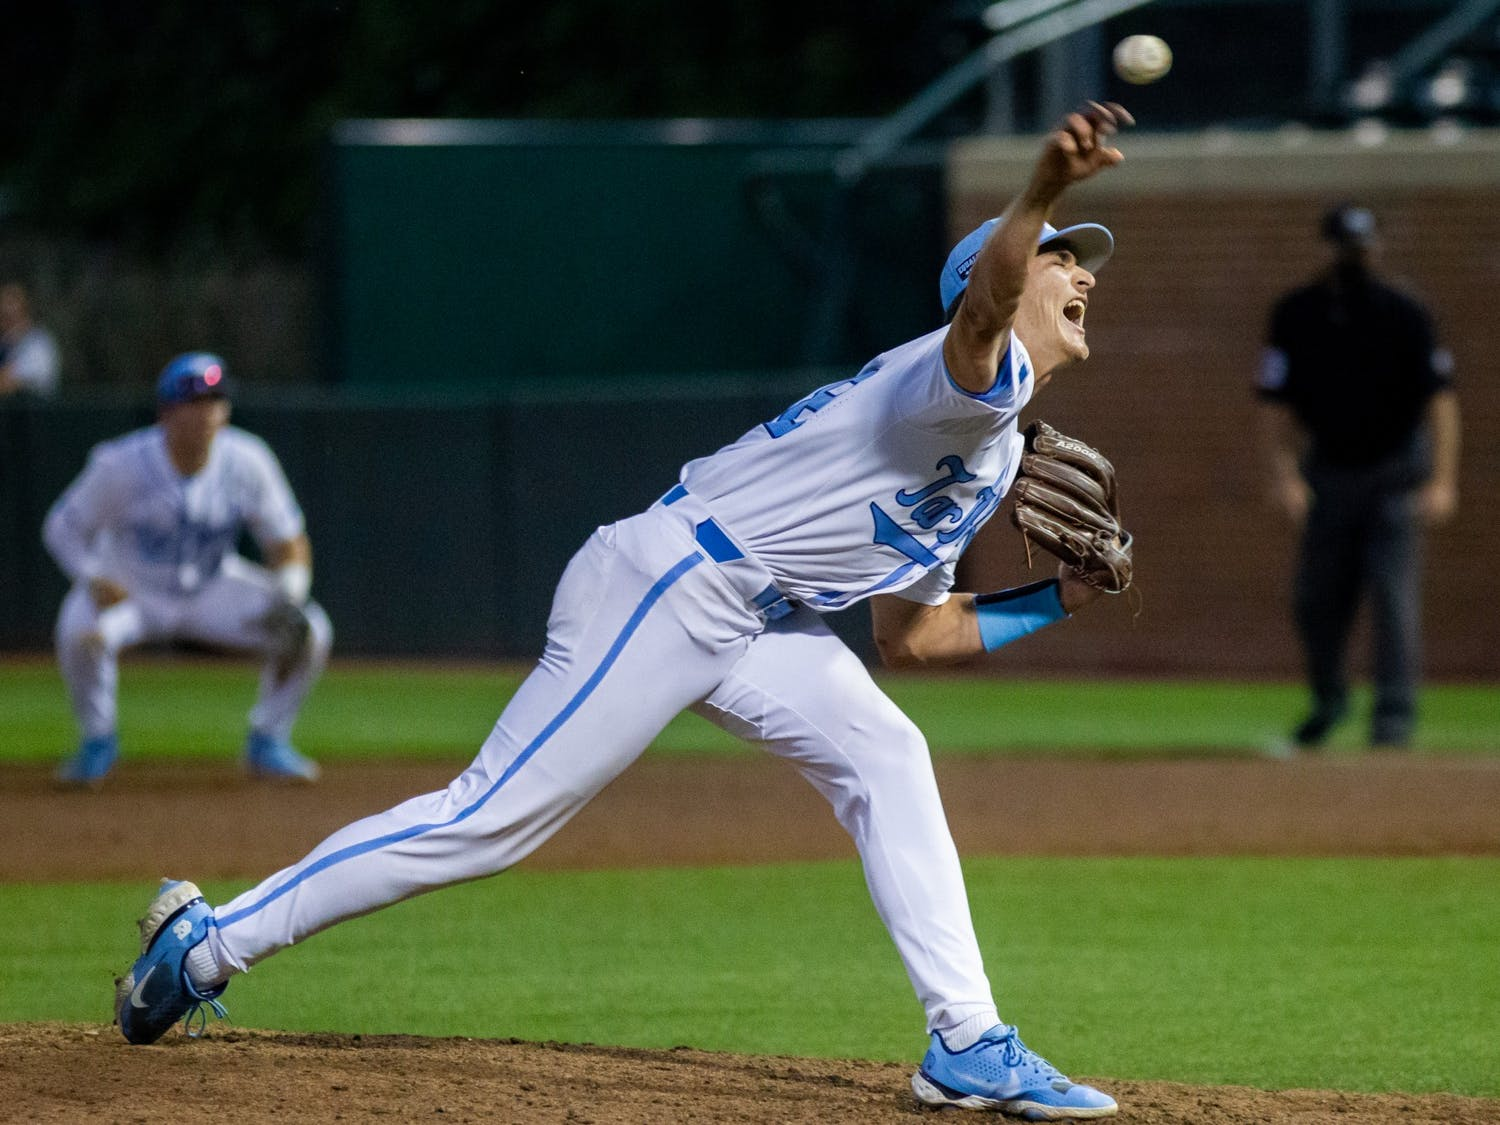 UNC sophomore right handed pitcher Nik Pry (36) throws the ball at the game against UNCW on Tuesday May 18, 2021 at Boshamer stadium. The Tar Heels won 14-9.